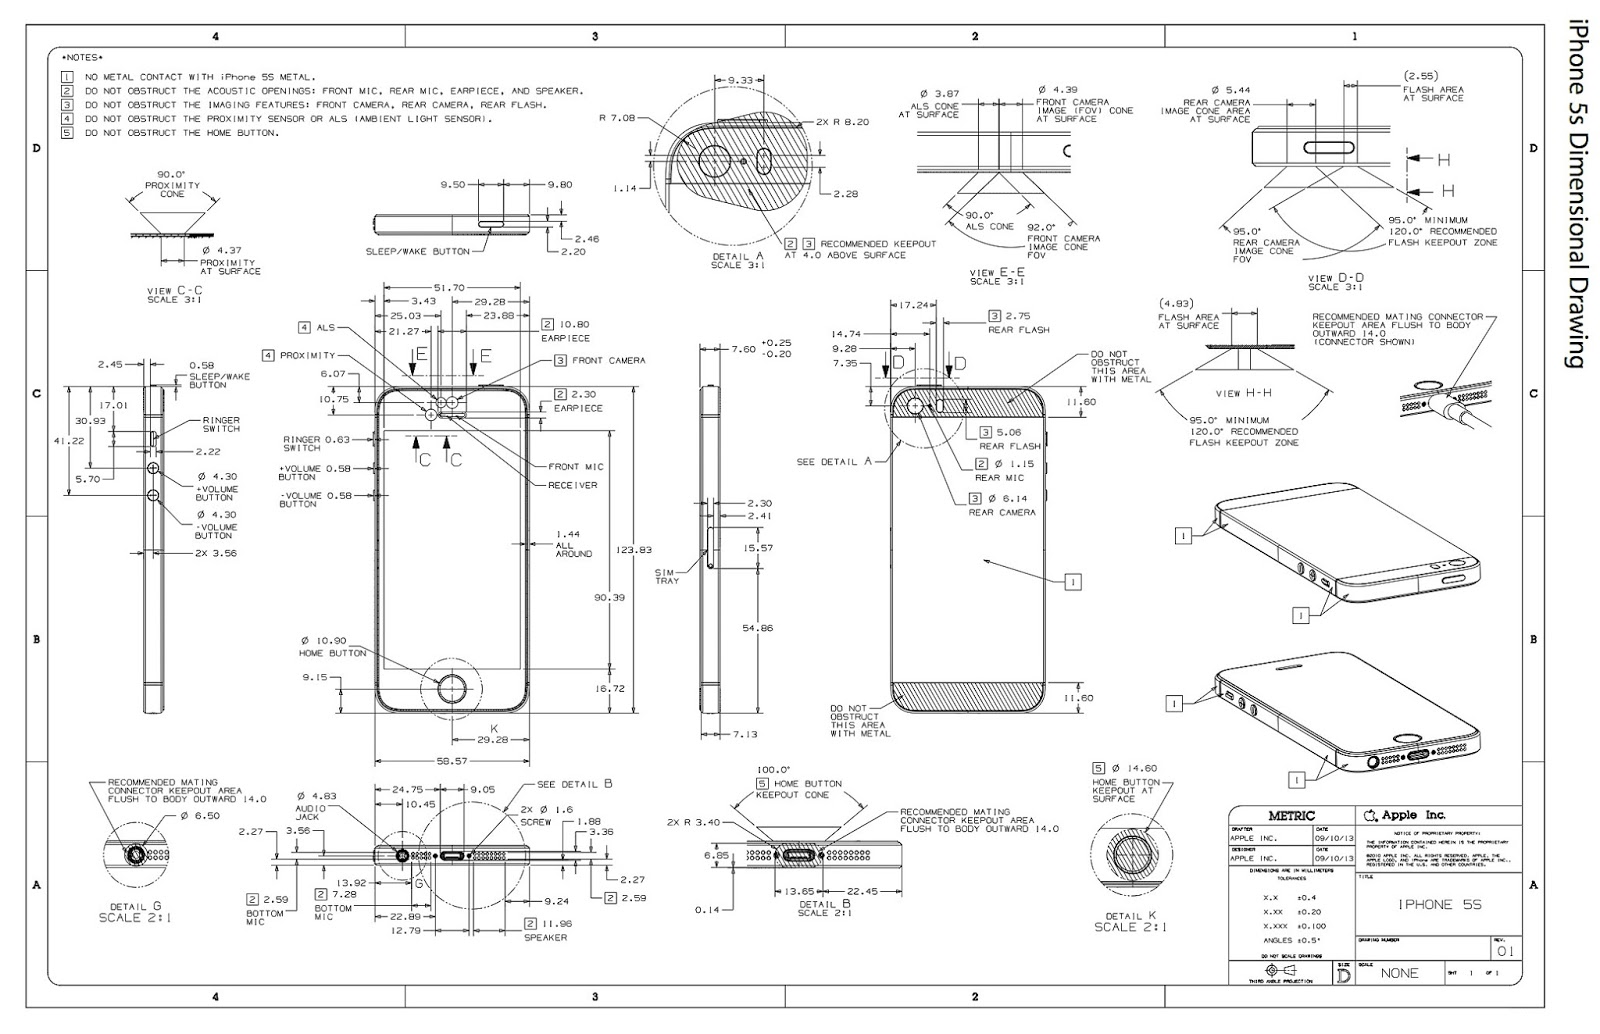 Mingxi Zheng Engineering Projects Iphone 6 Cable Schematic